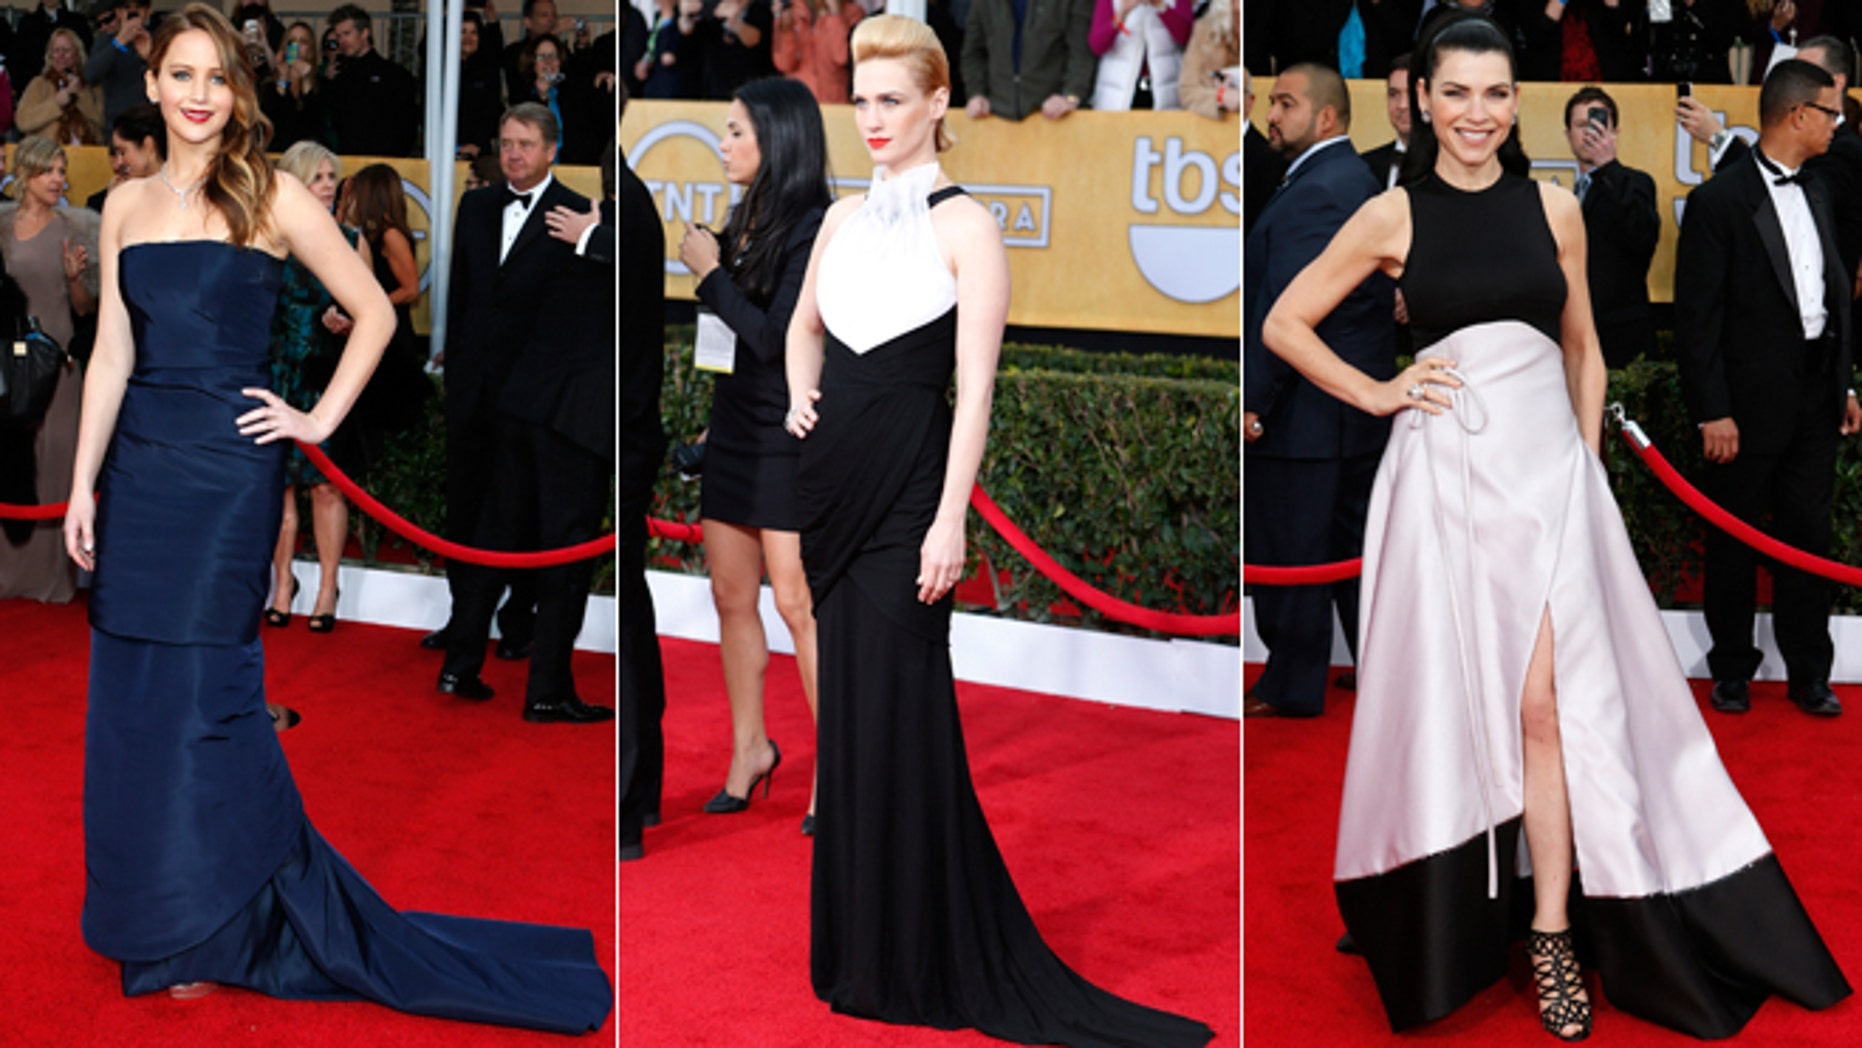 Jennifer Lawrence, left, January Jones, center, and Julianna Margulies attend the Screen Actors Guild Awards.